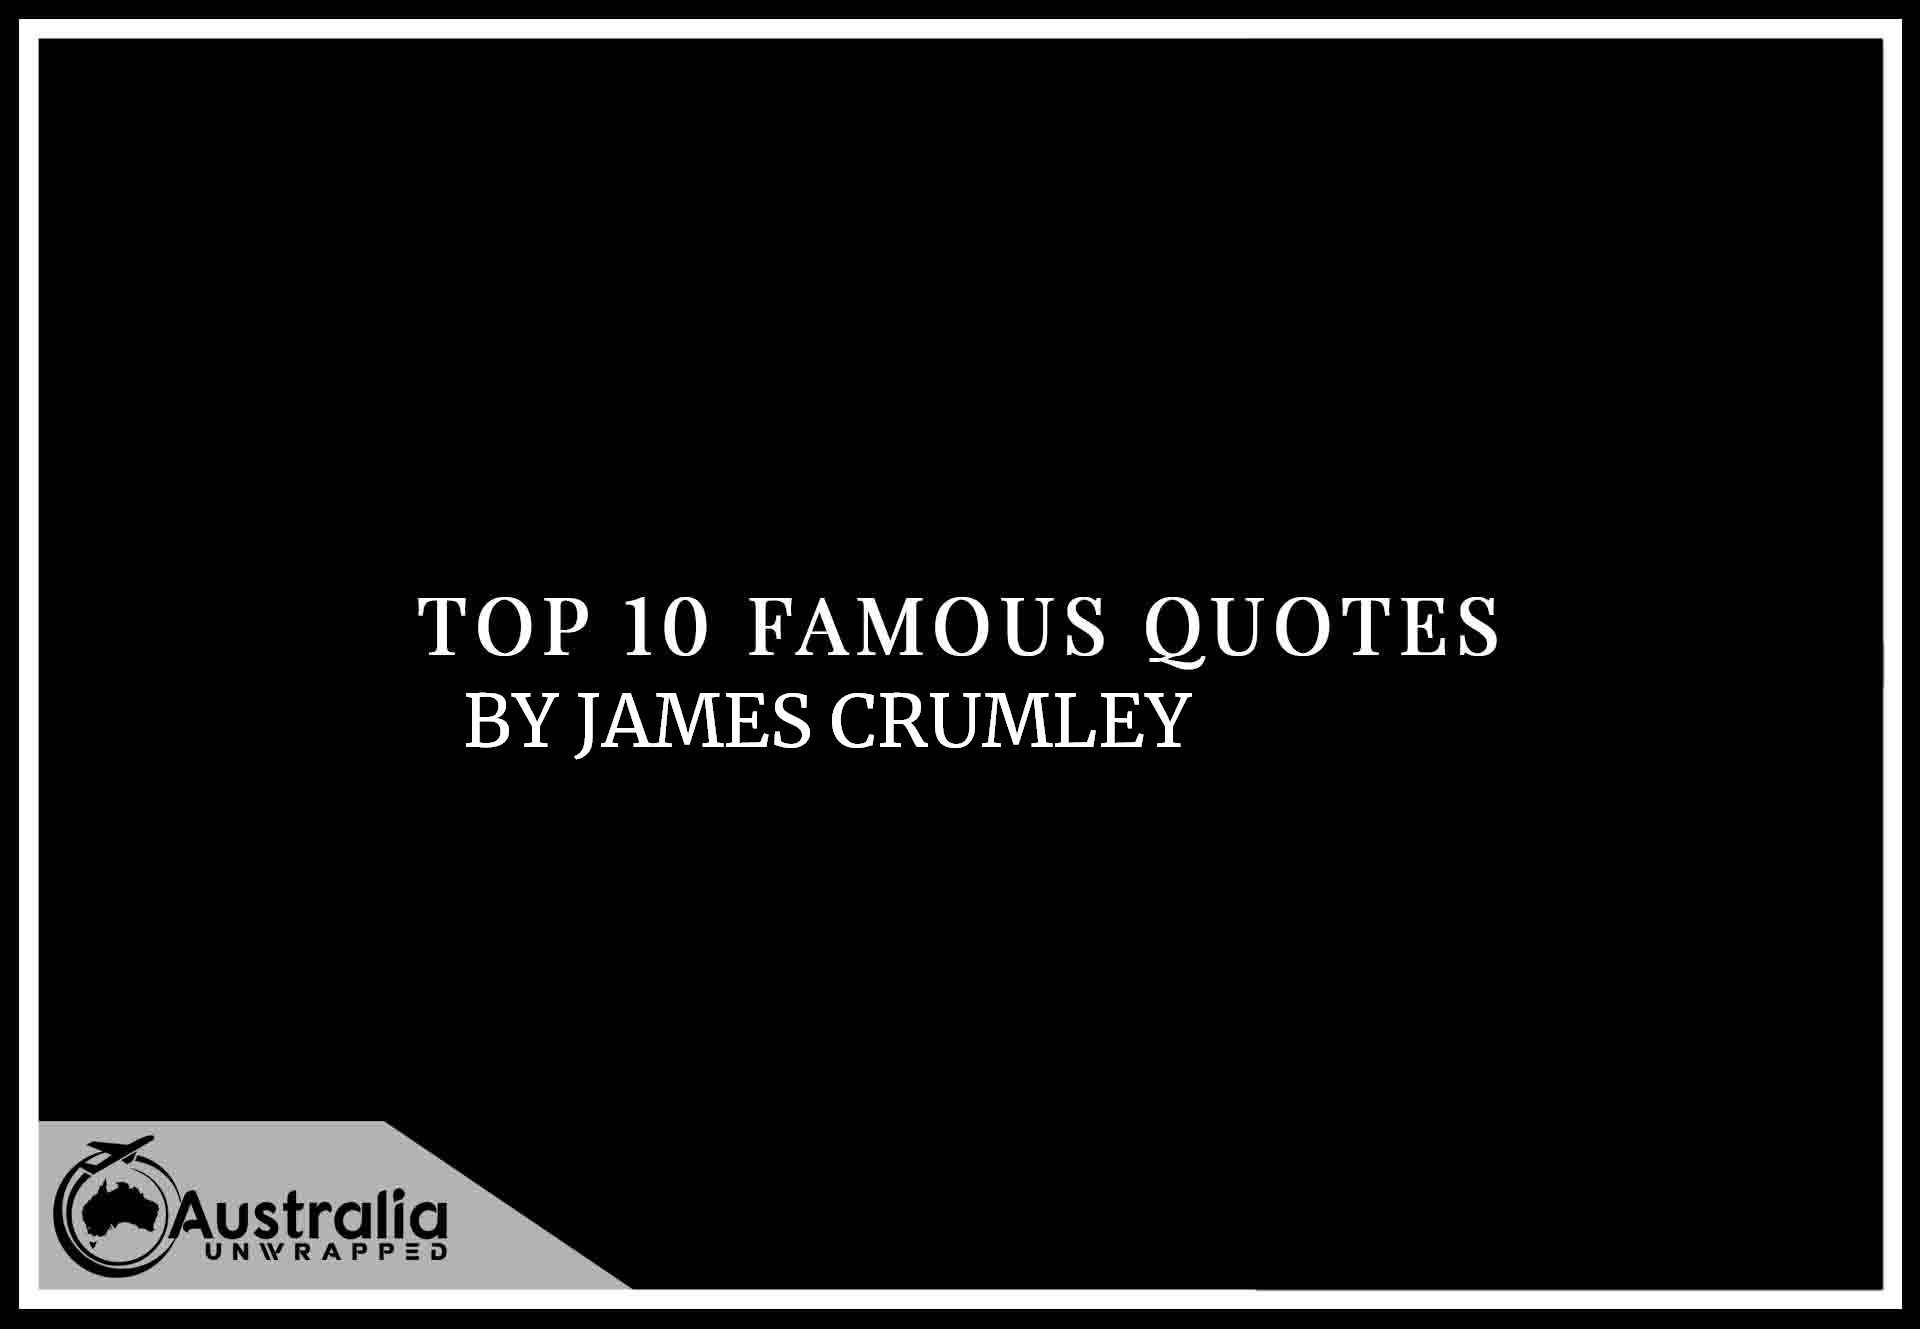 Top 10 Famous Quotes by Author James Crumley